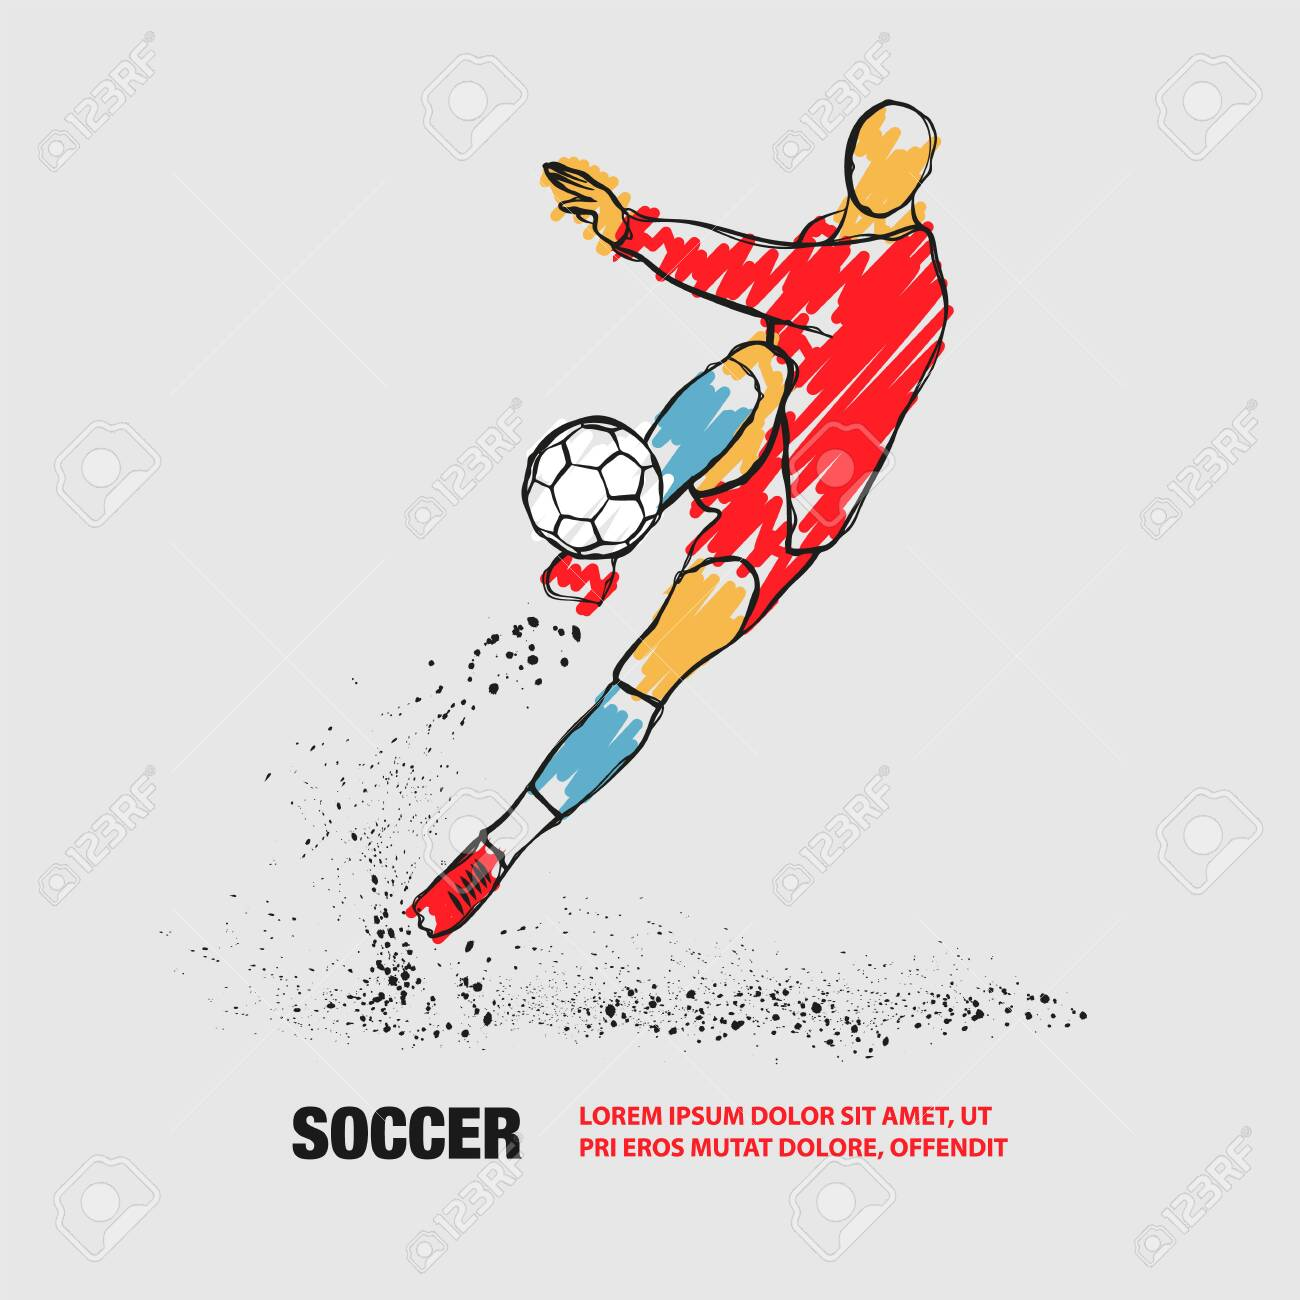 Soccer player hits the ball. Front view. Vector outline of soccer player with scribble doodles. - 130792537